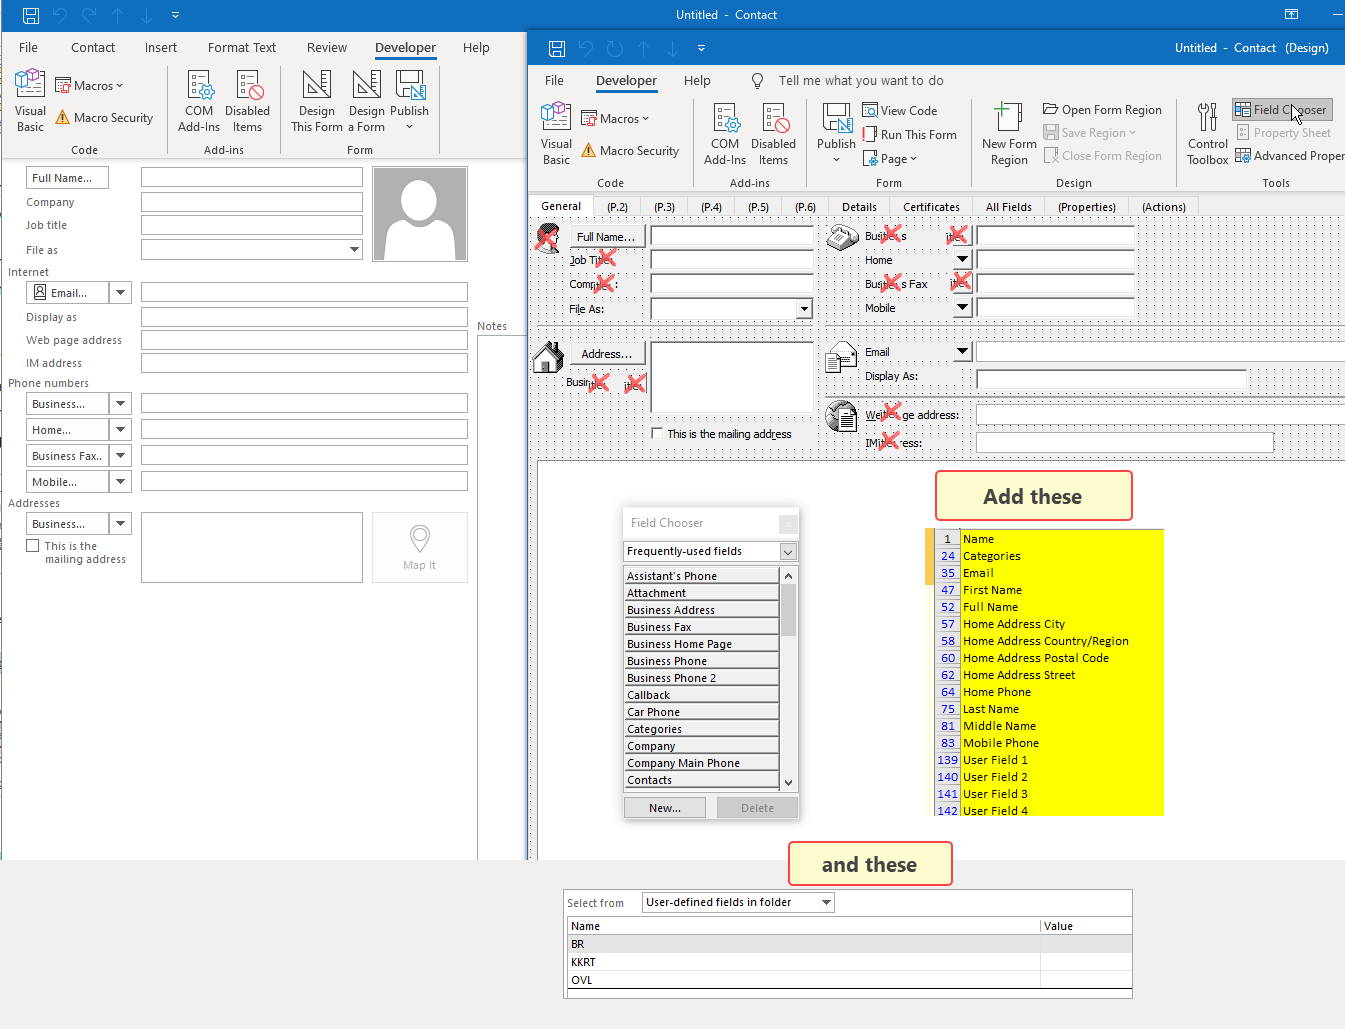 Outlook Contact Form Design mode-10042020 150203.png